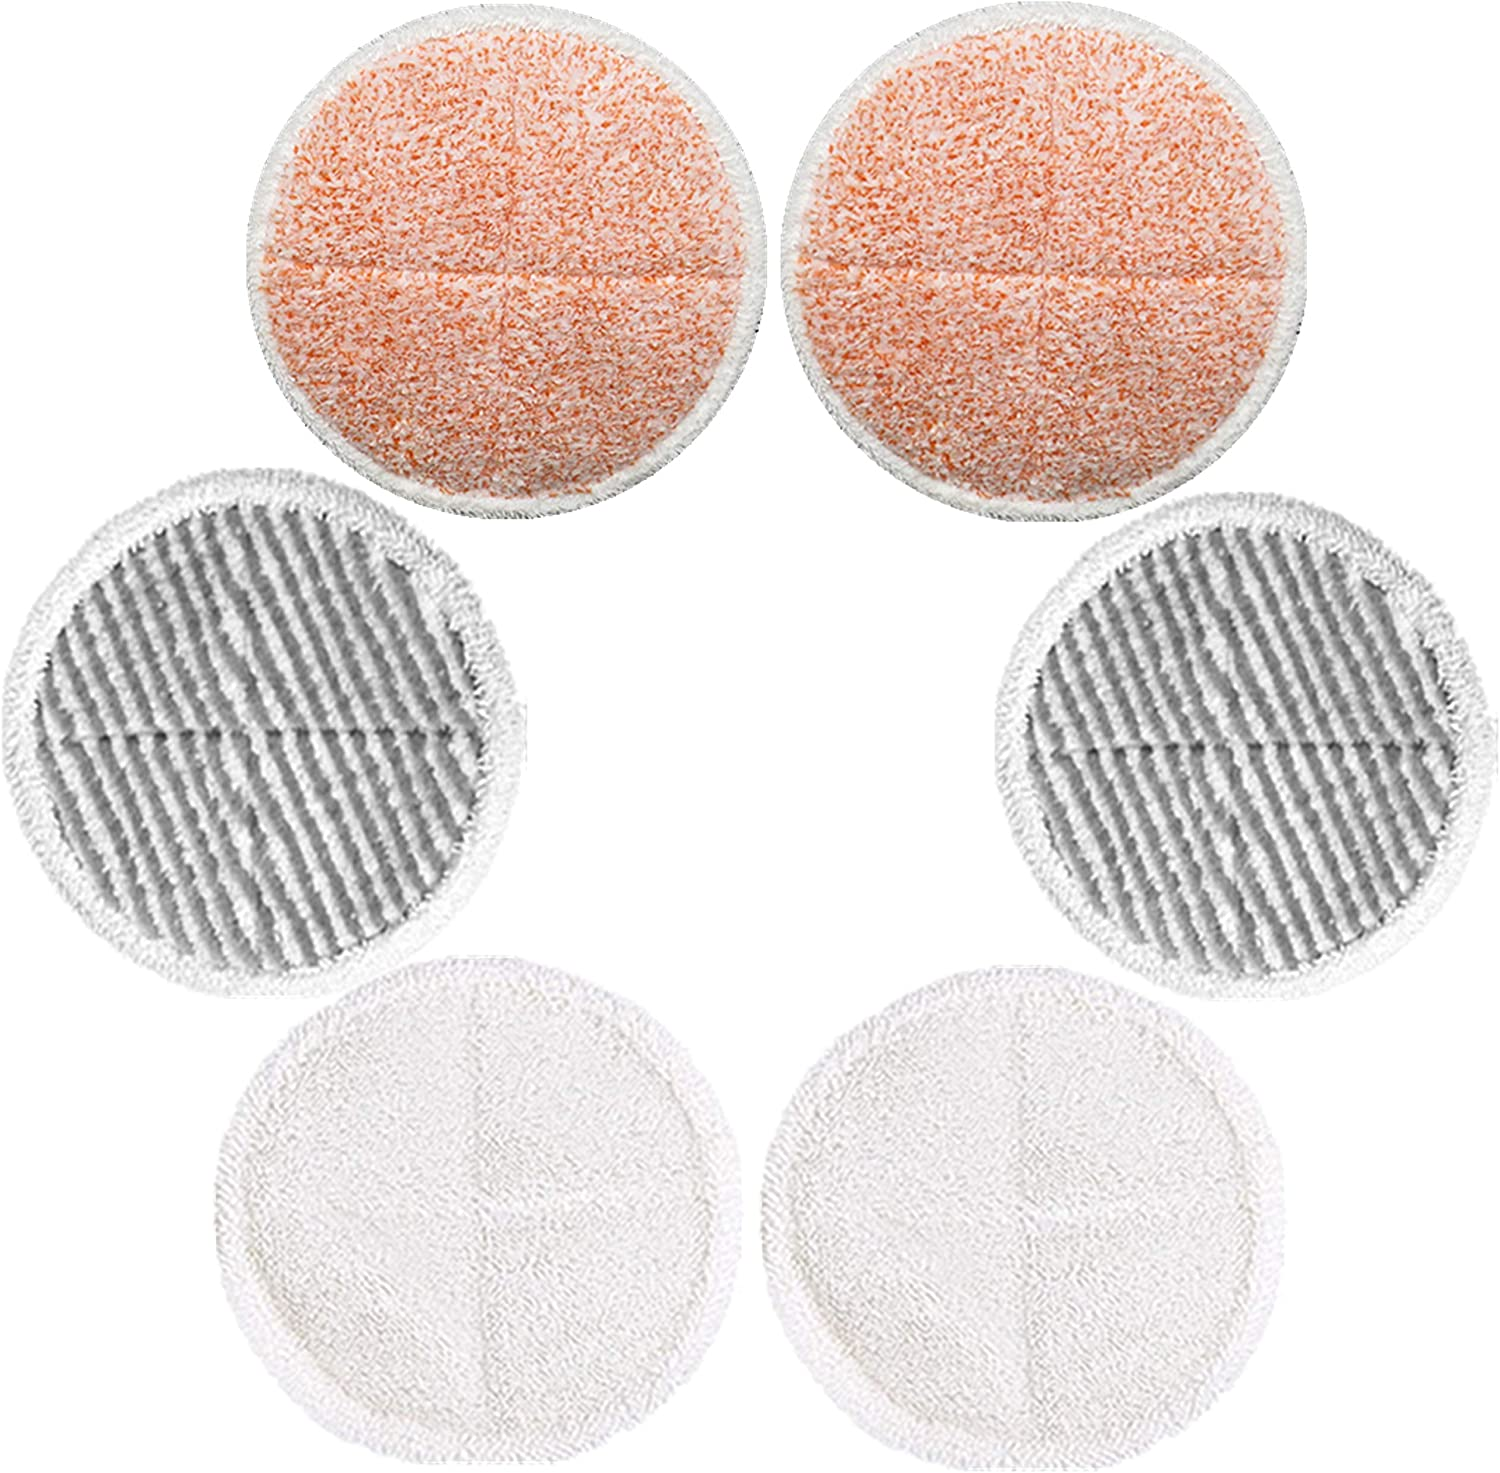 CKL&DJ 6 Pack Mop Pads Replacement for Bissell Spinwave 2039A 2124 (Included 2 Soft Pads+2 Scrubby Pads+2 Heavy Scrub Pads)